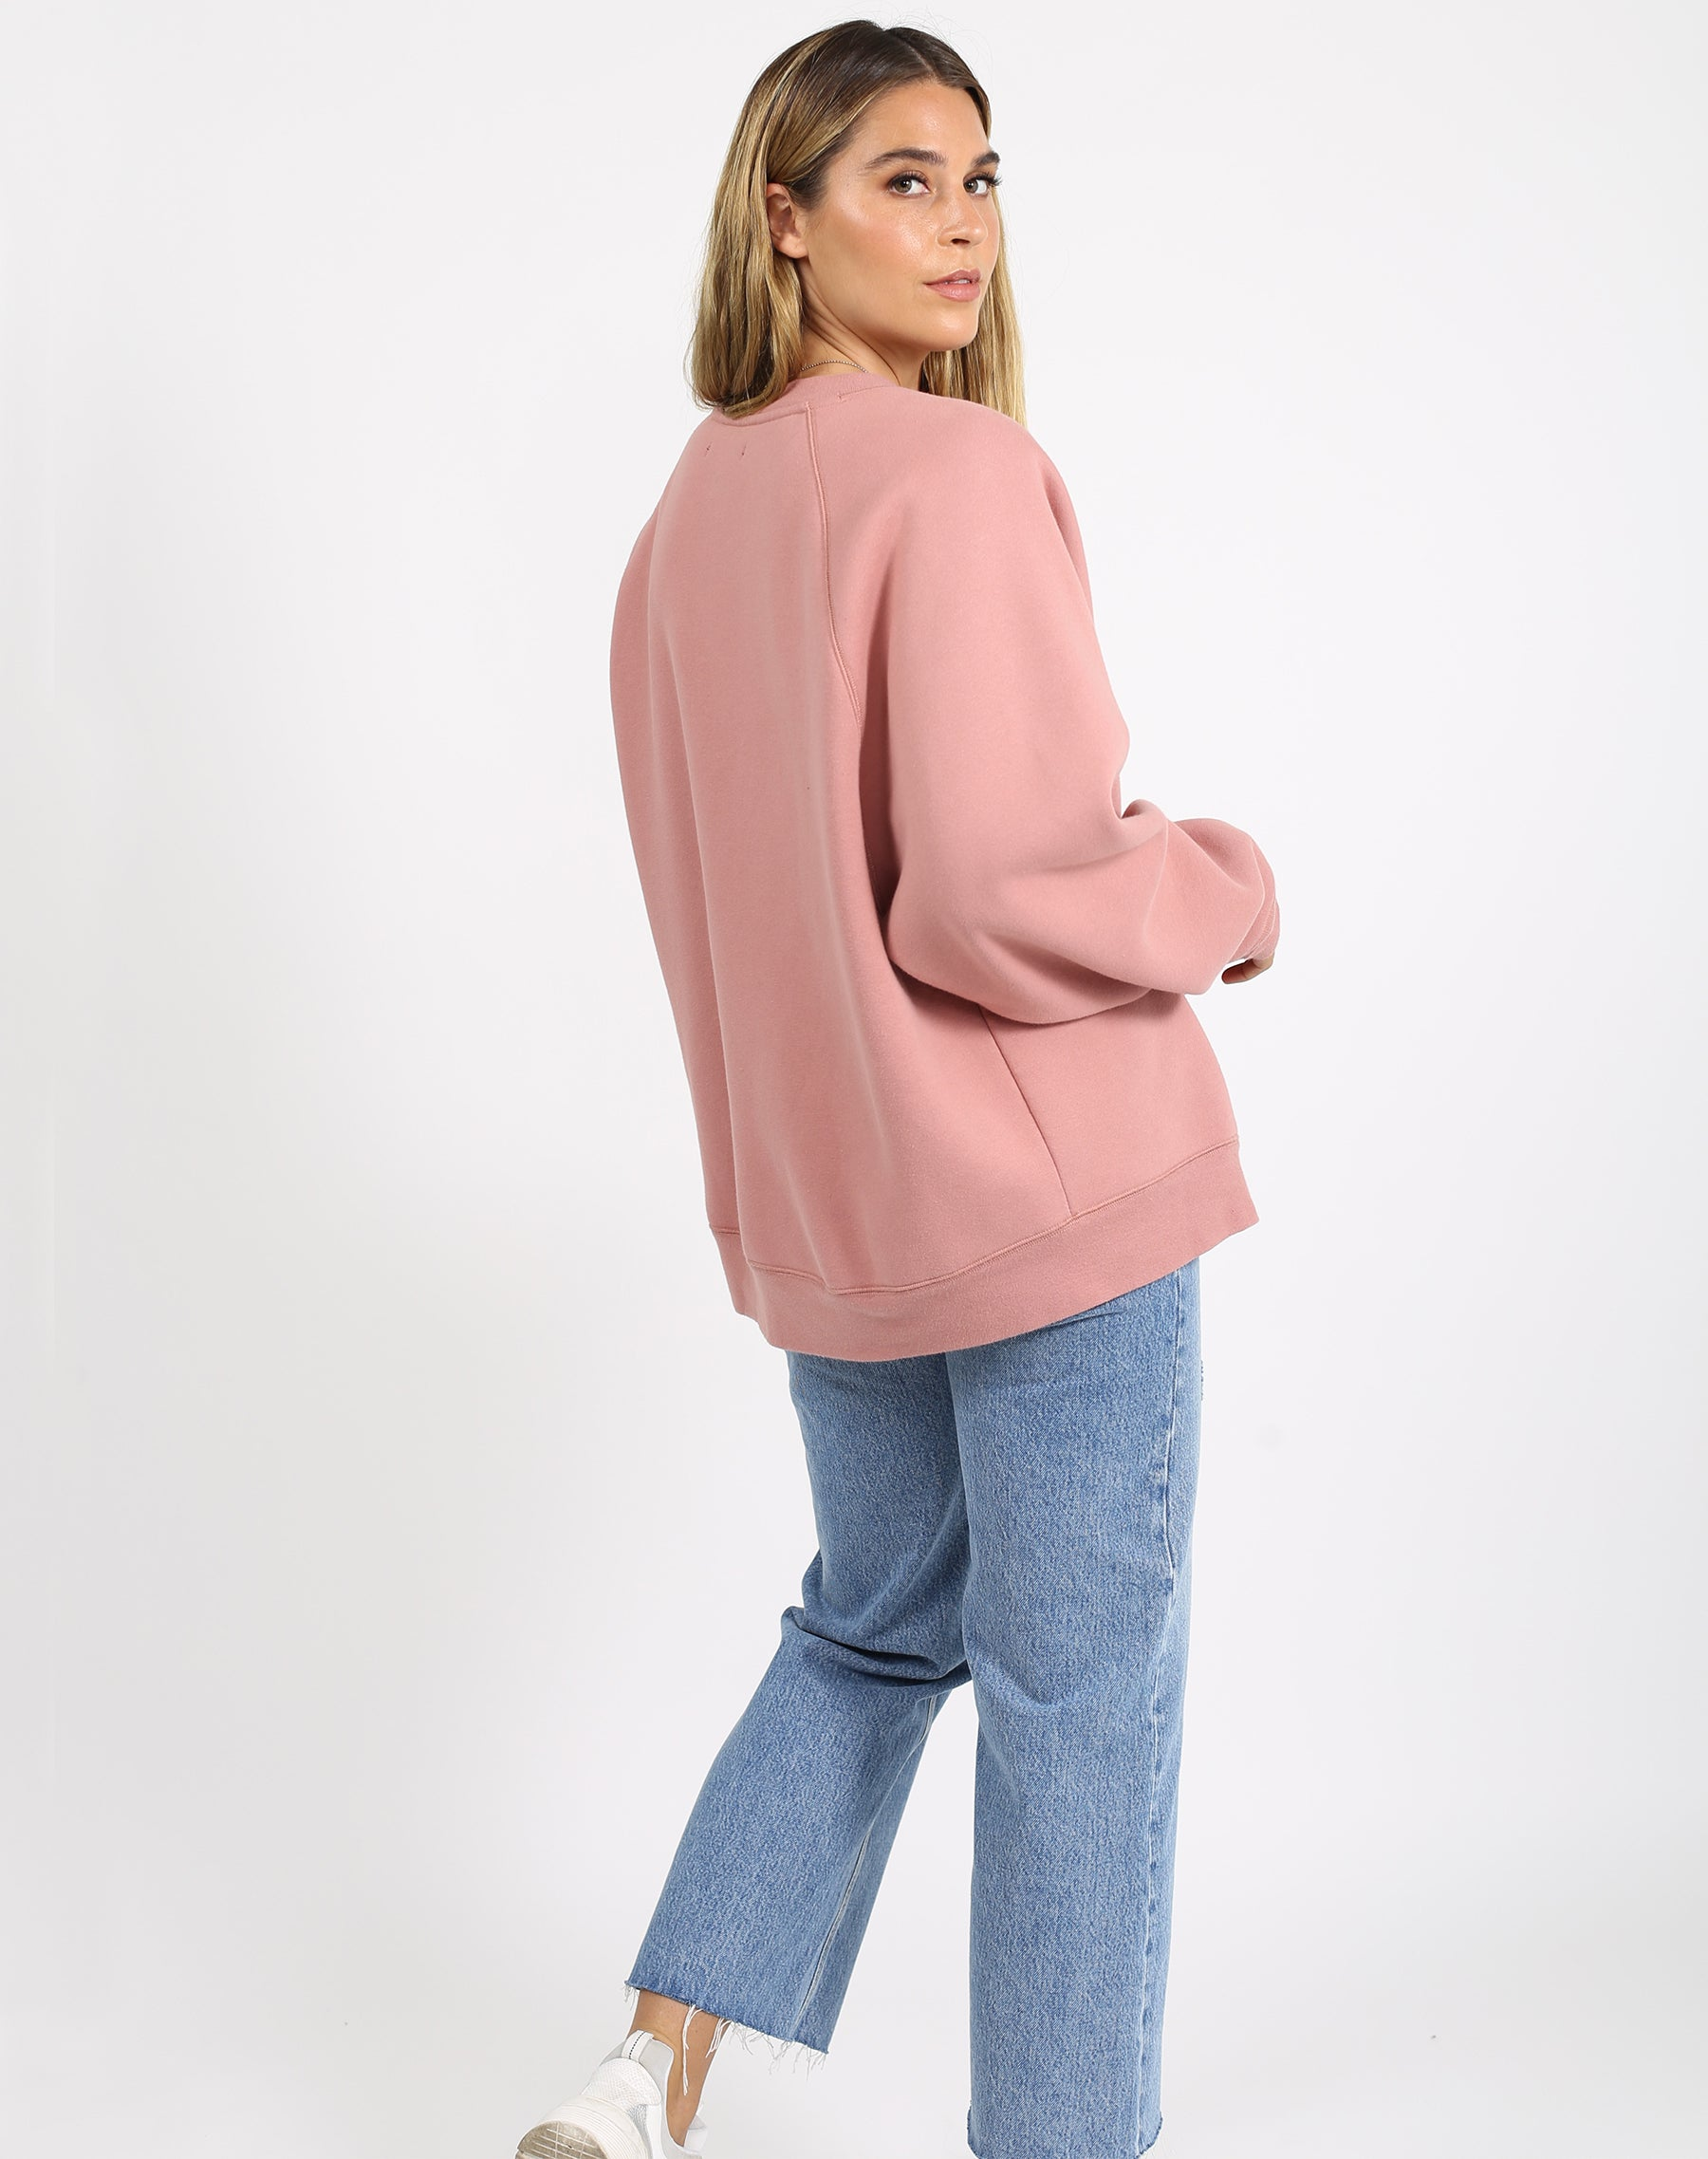 This is a photo of the side of a model wearing the welcome to the babes club not your boyfriend fit crew neck sweatshirt in vintage rose by brunette the label.